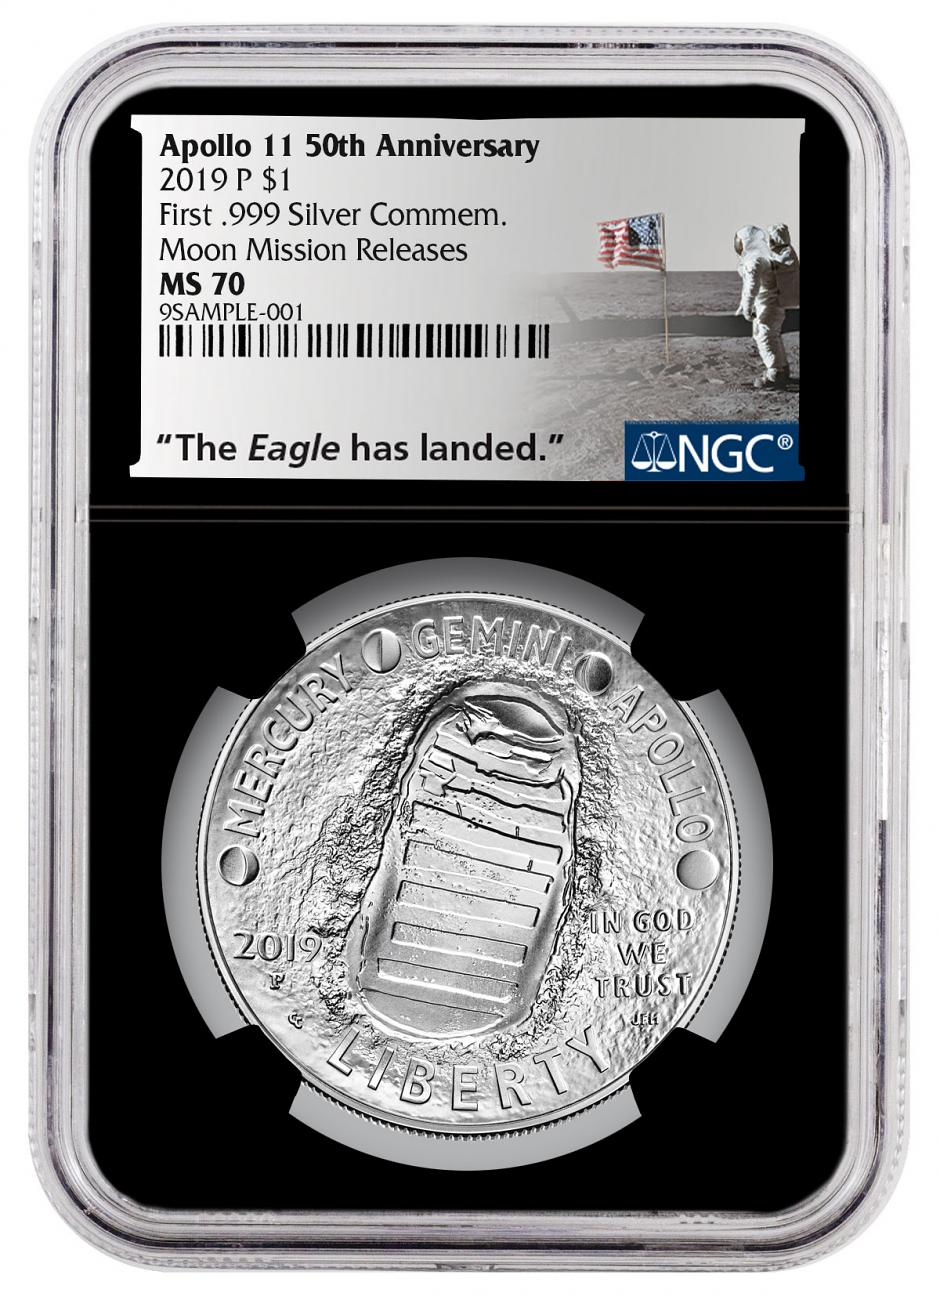 2019-P US Apollo 11 50th Anniversary Commemorative Silver Dollar Coin NGC MS70 Moon Mission Releases Black Core Holder